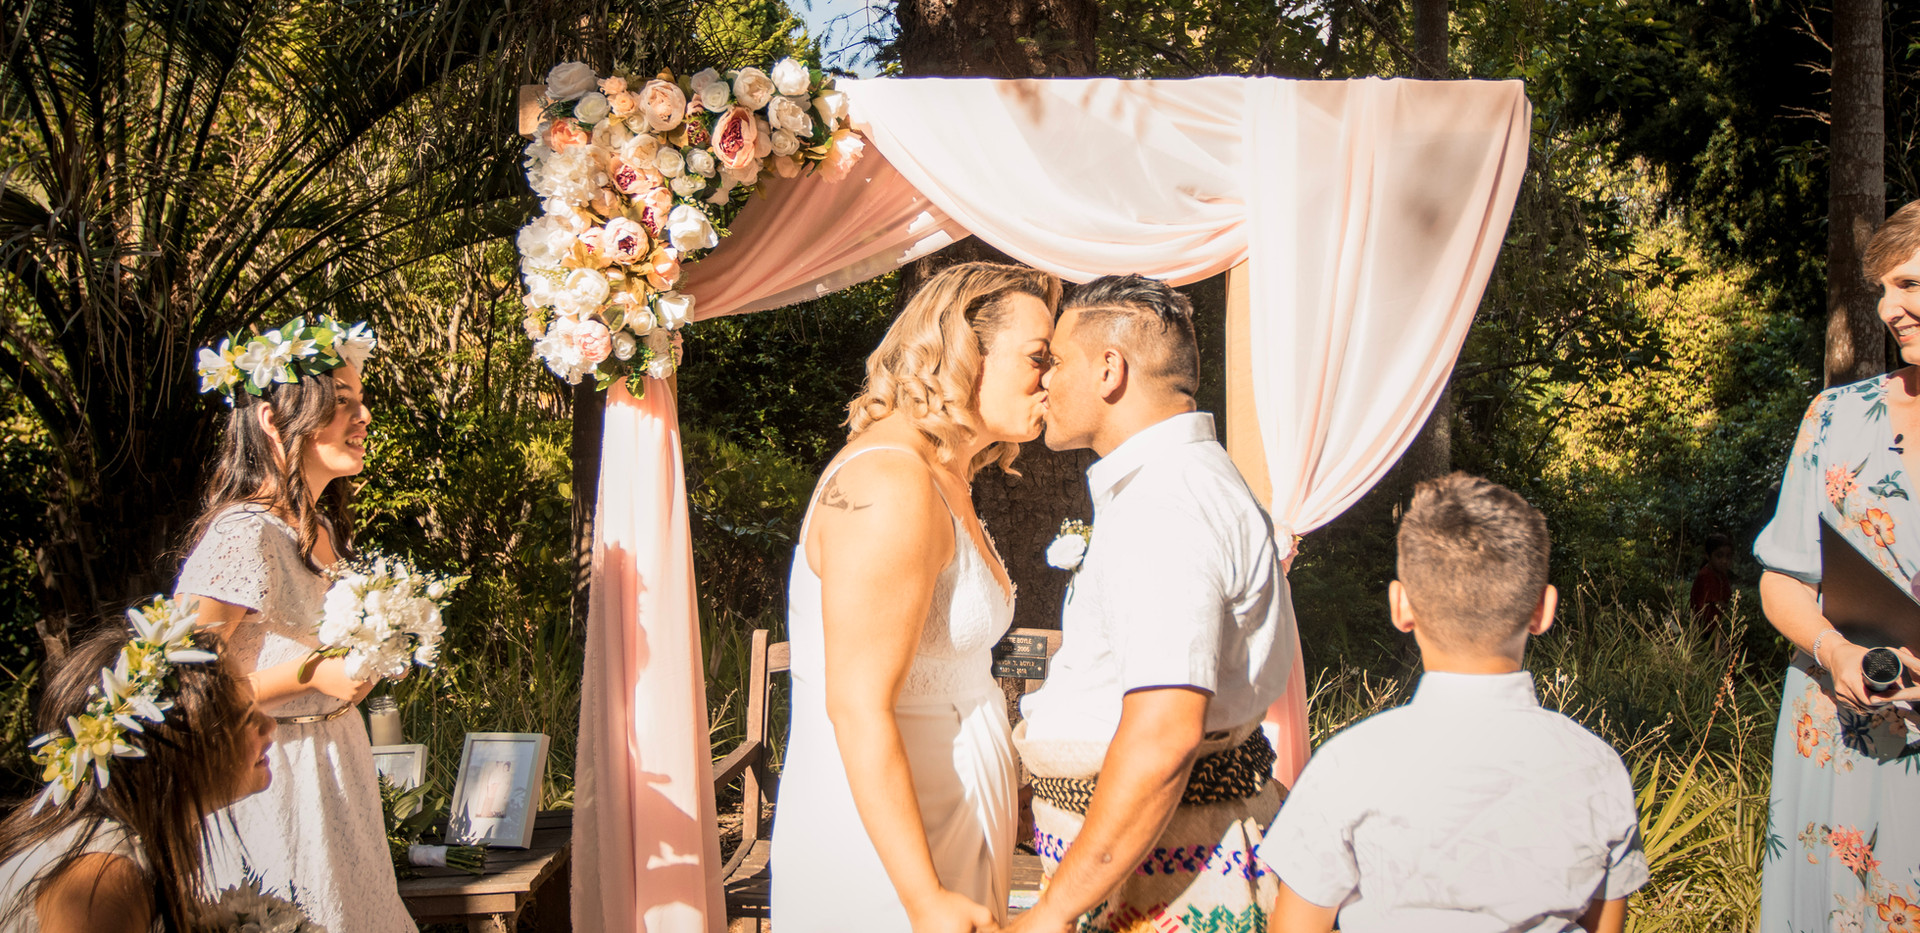 Celebrate With Love, Celebrant, Andrea Brady, Weddings, Auckland, NZ, Marriage, Elopement, Vow Renewal, Baby Naming,